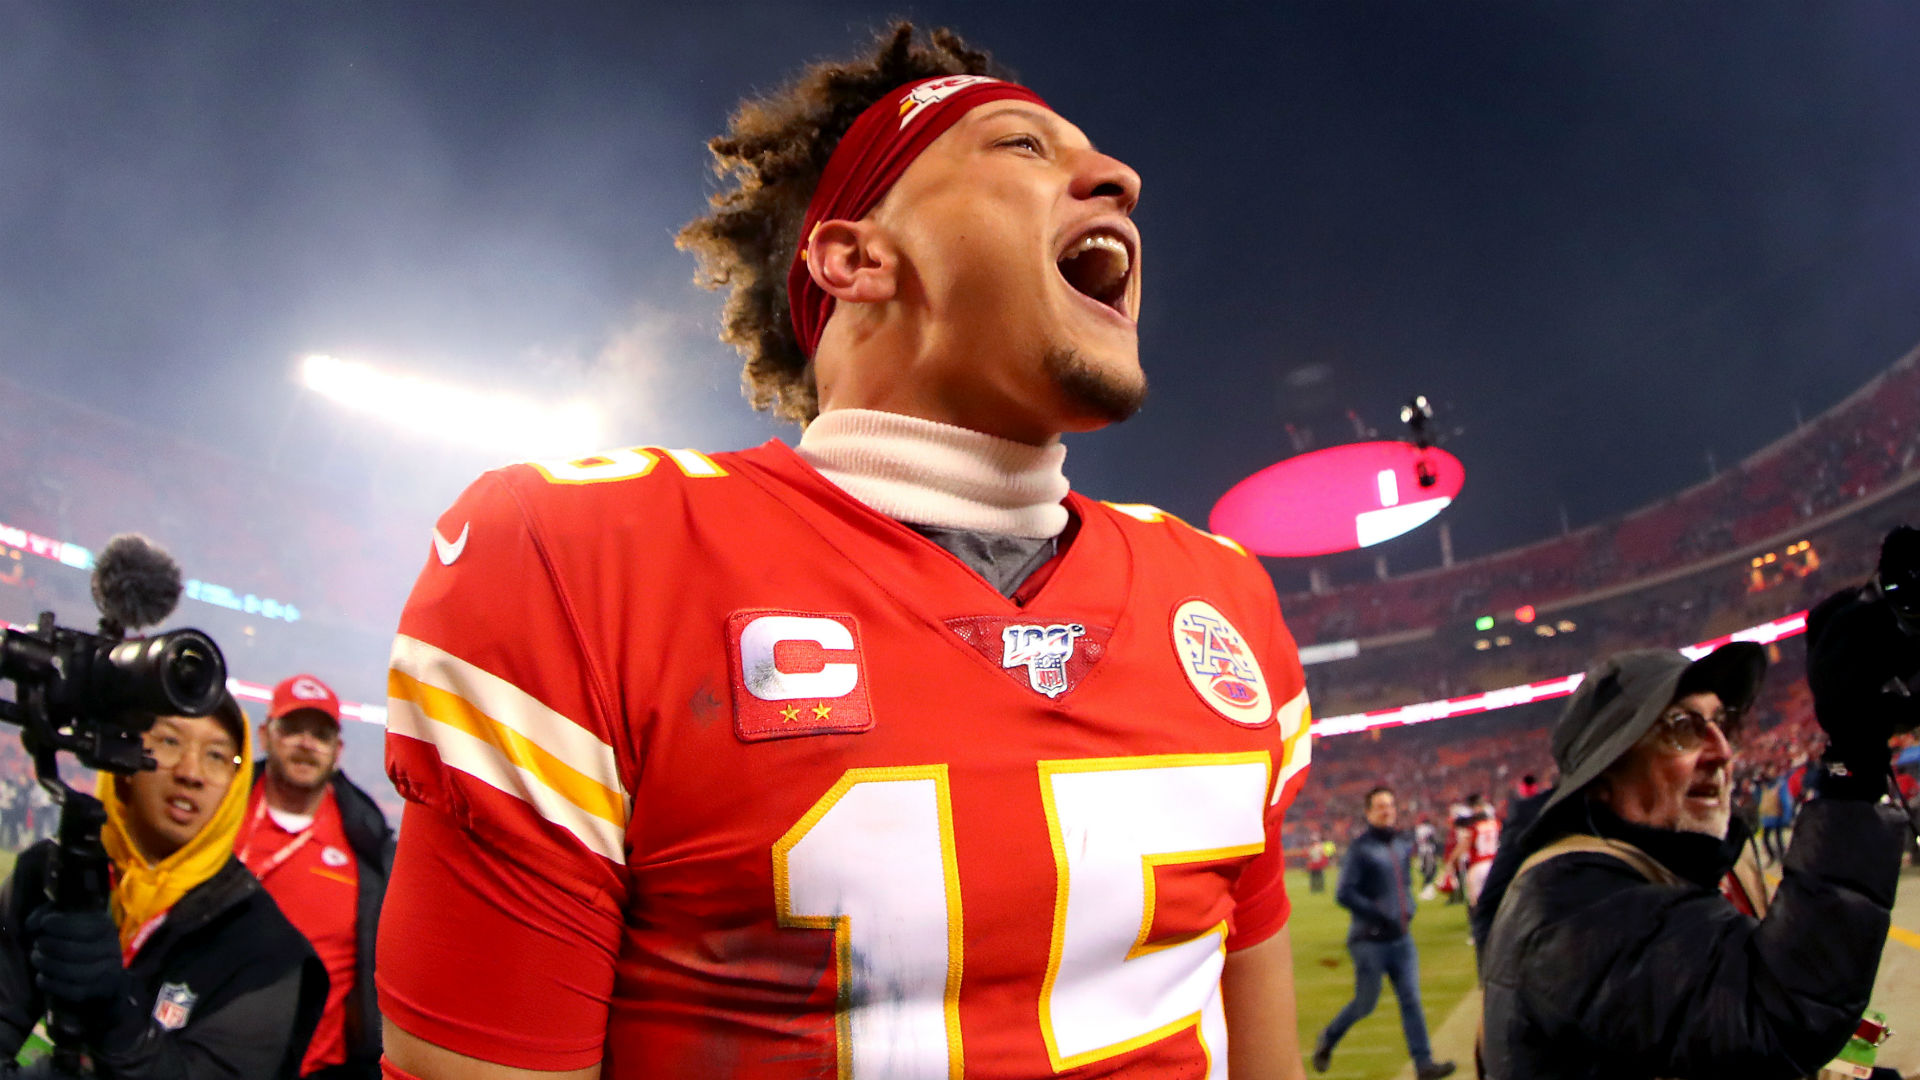 Patrick Mahomes contract details: Here's how much money Chiefs QB will actually make in 'half-billion' dollar deal